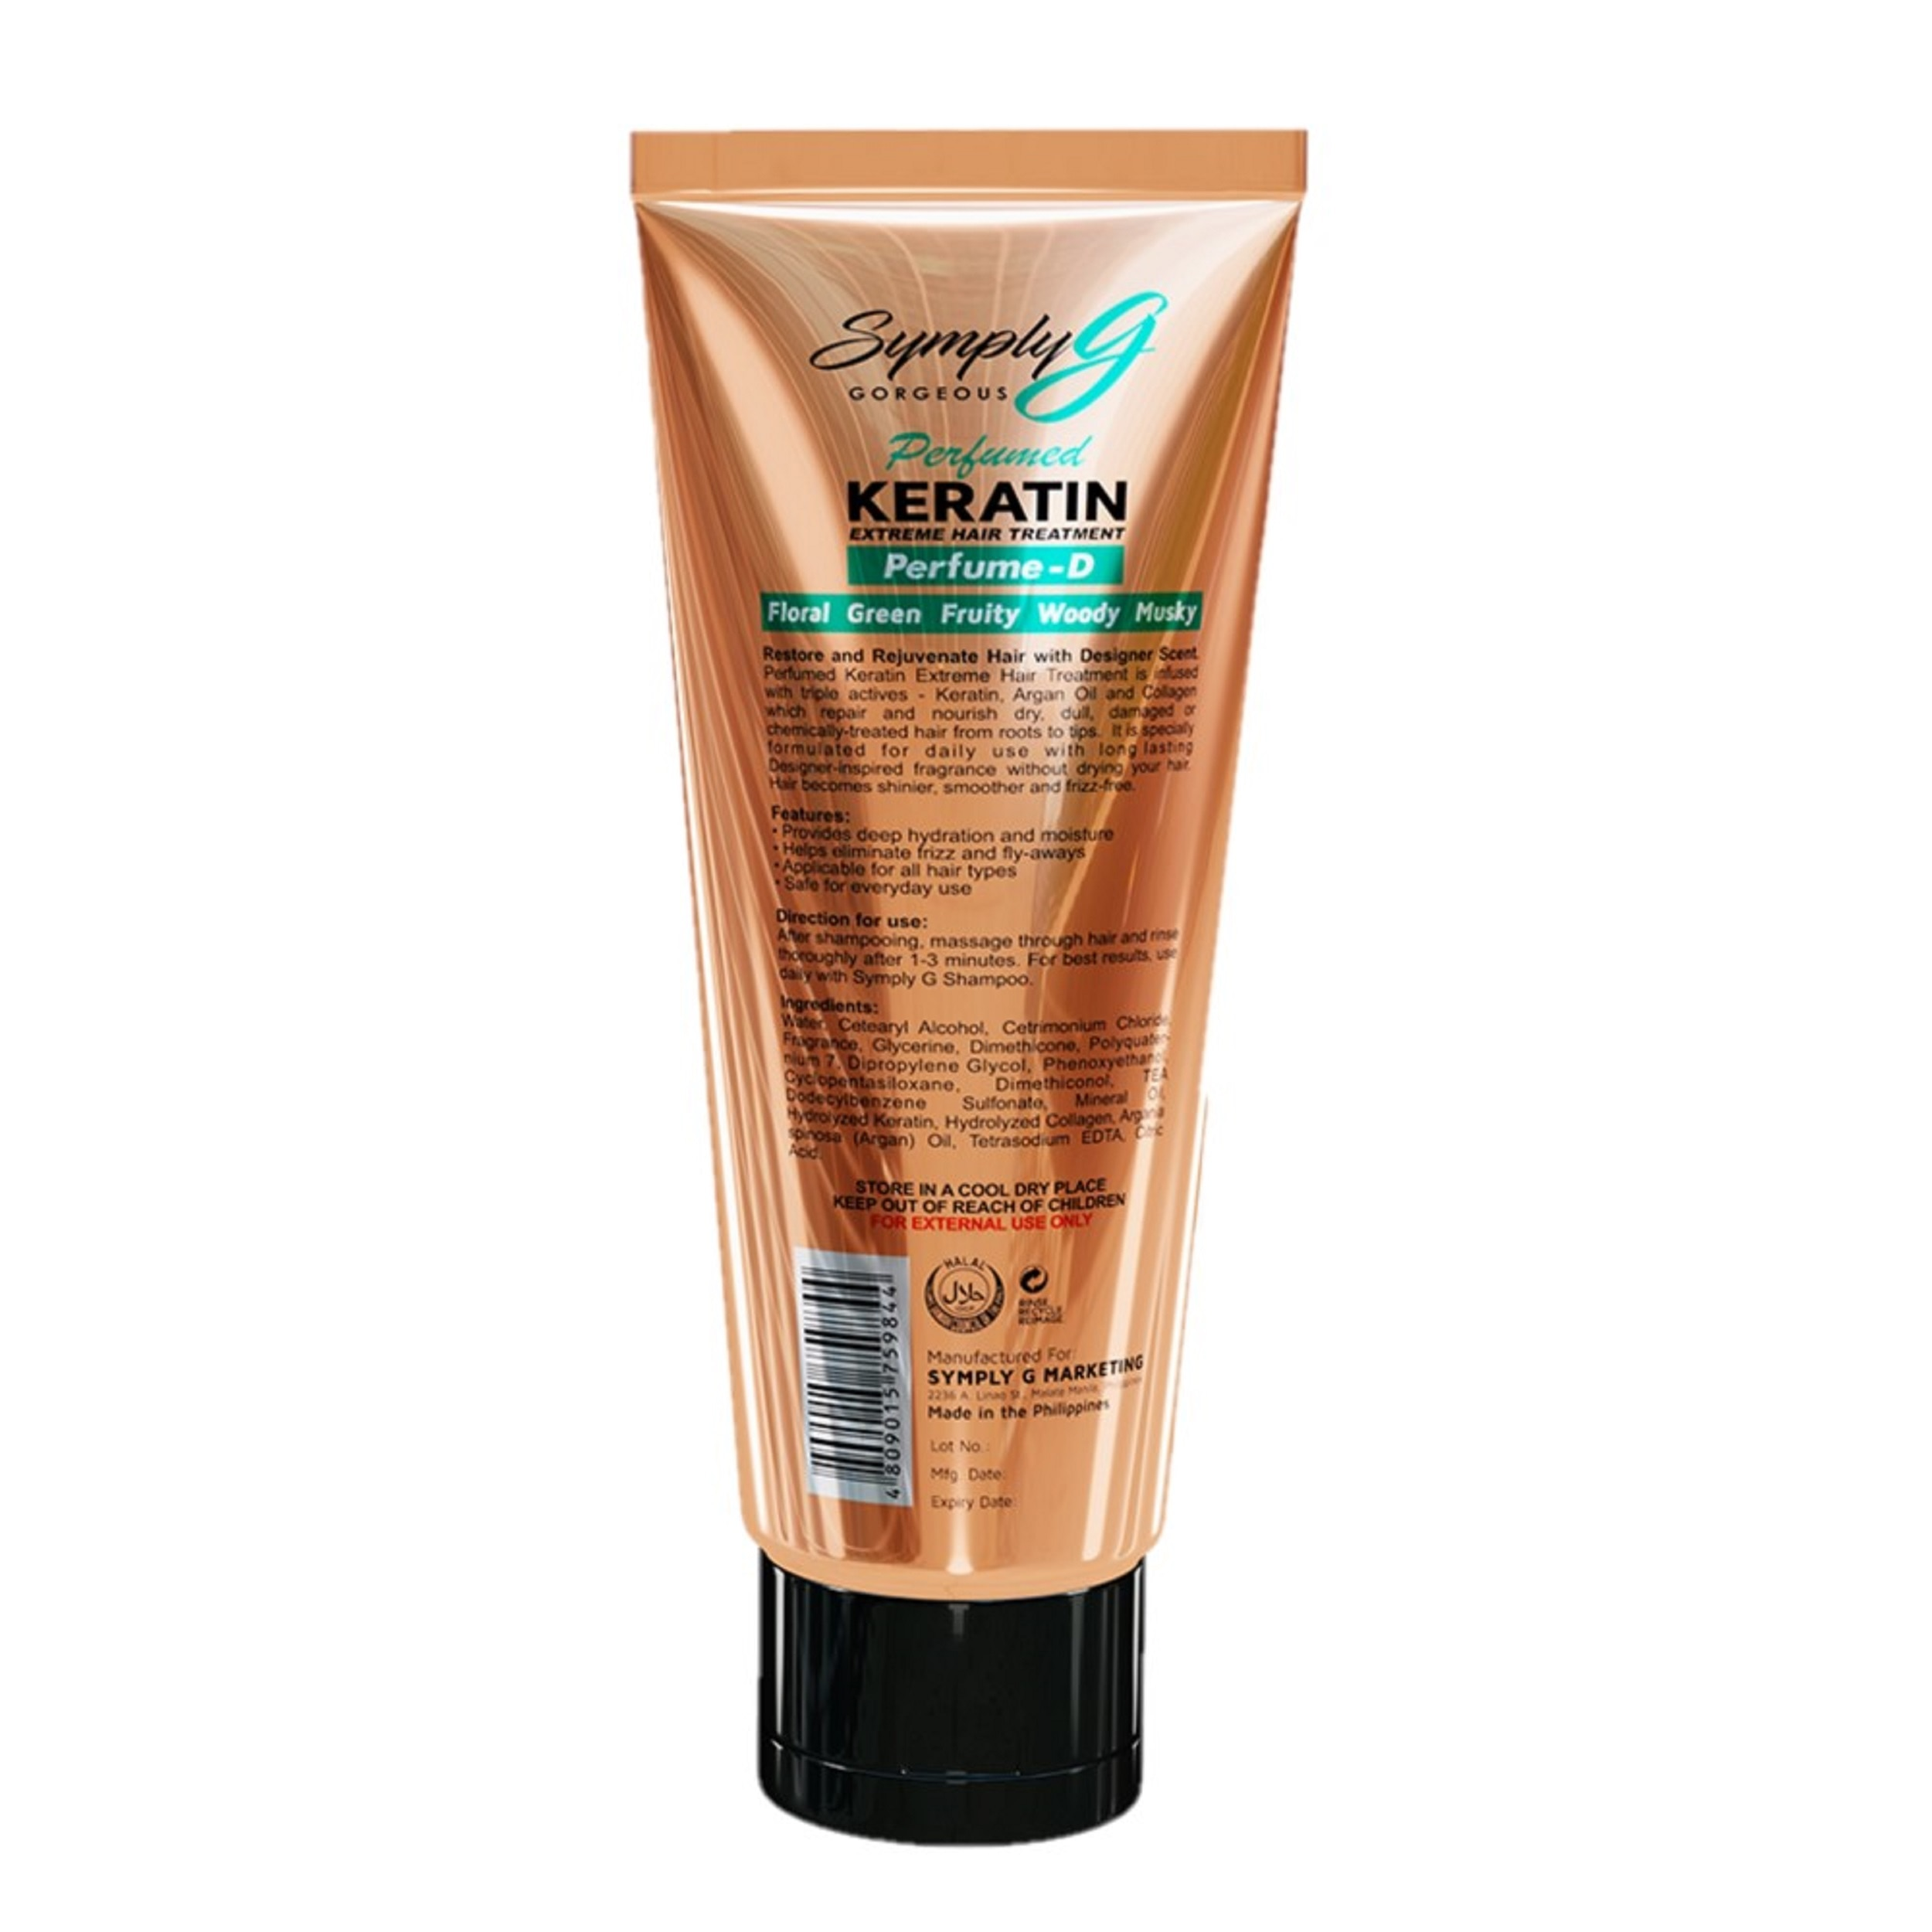 SYMPLY GSymply G Perfume D Keratin Extreme Hair Treatment With Argan Oil & Collagen,Treatment Condtioner-